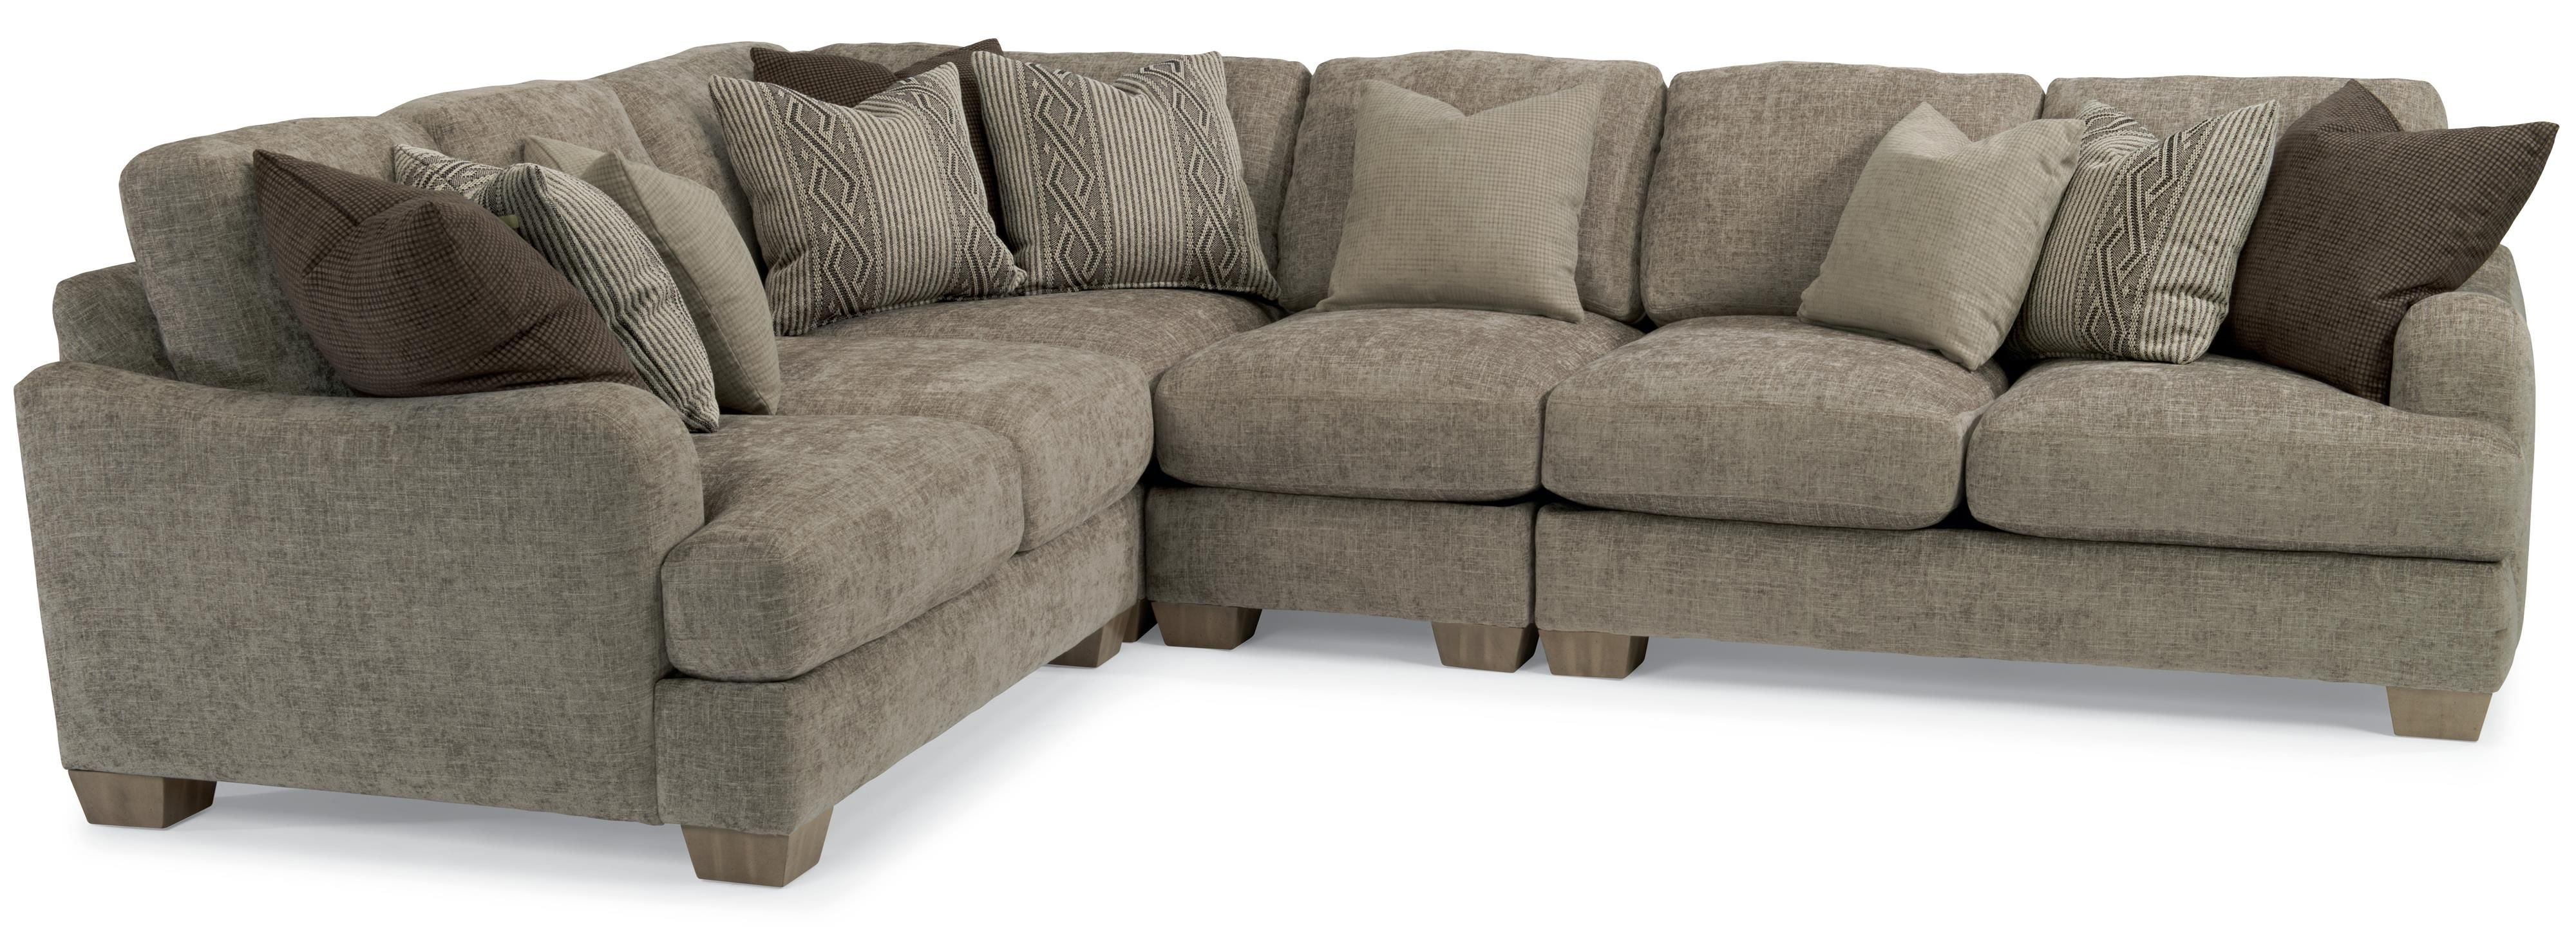 Vanessa Sectional Sofa With Loose Pillow Backflexsteel | Living within Johnson City Tn Sectional Sofas (Image 10 of 10)